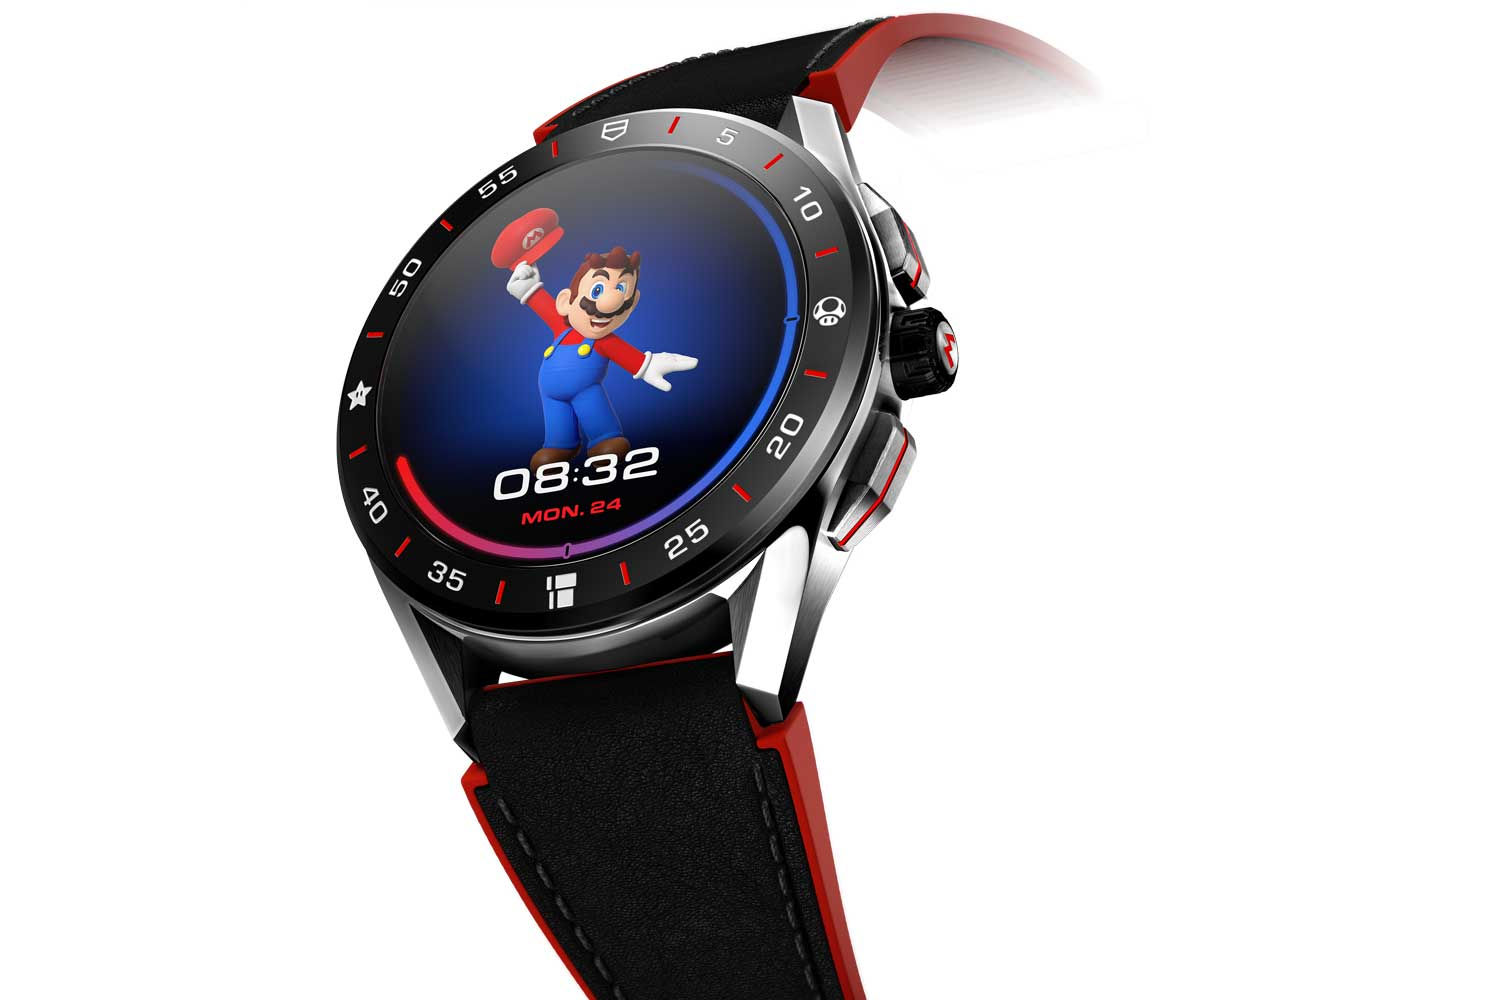 Mario greets the wearer with a welcoming salute in the morning and as one racks up with the step count and gets closer to the target, a different animation plays out on the dial.